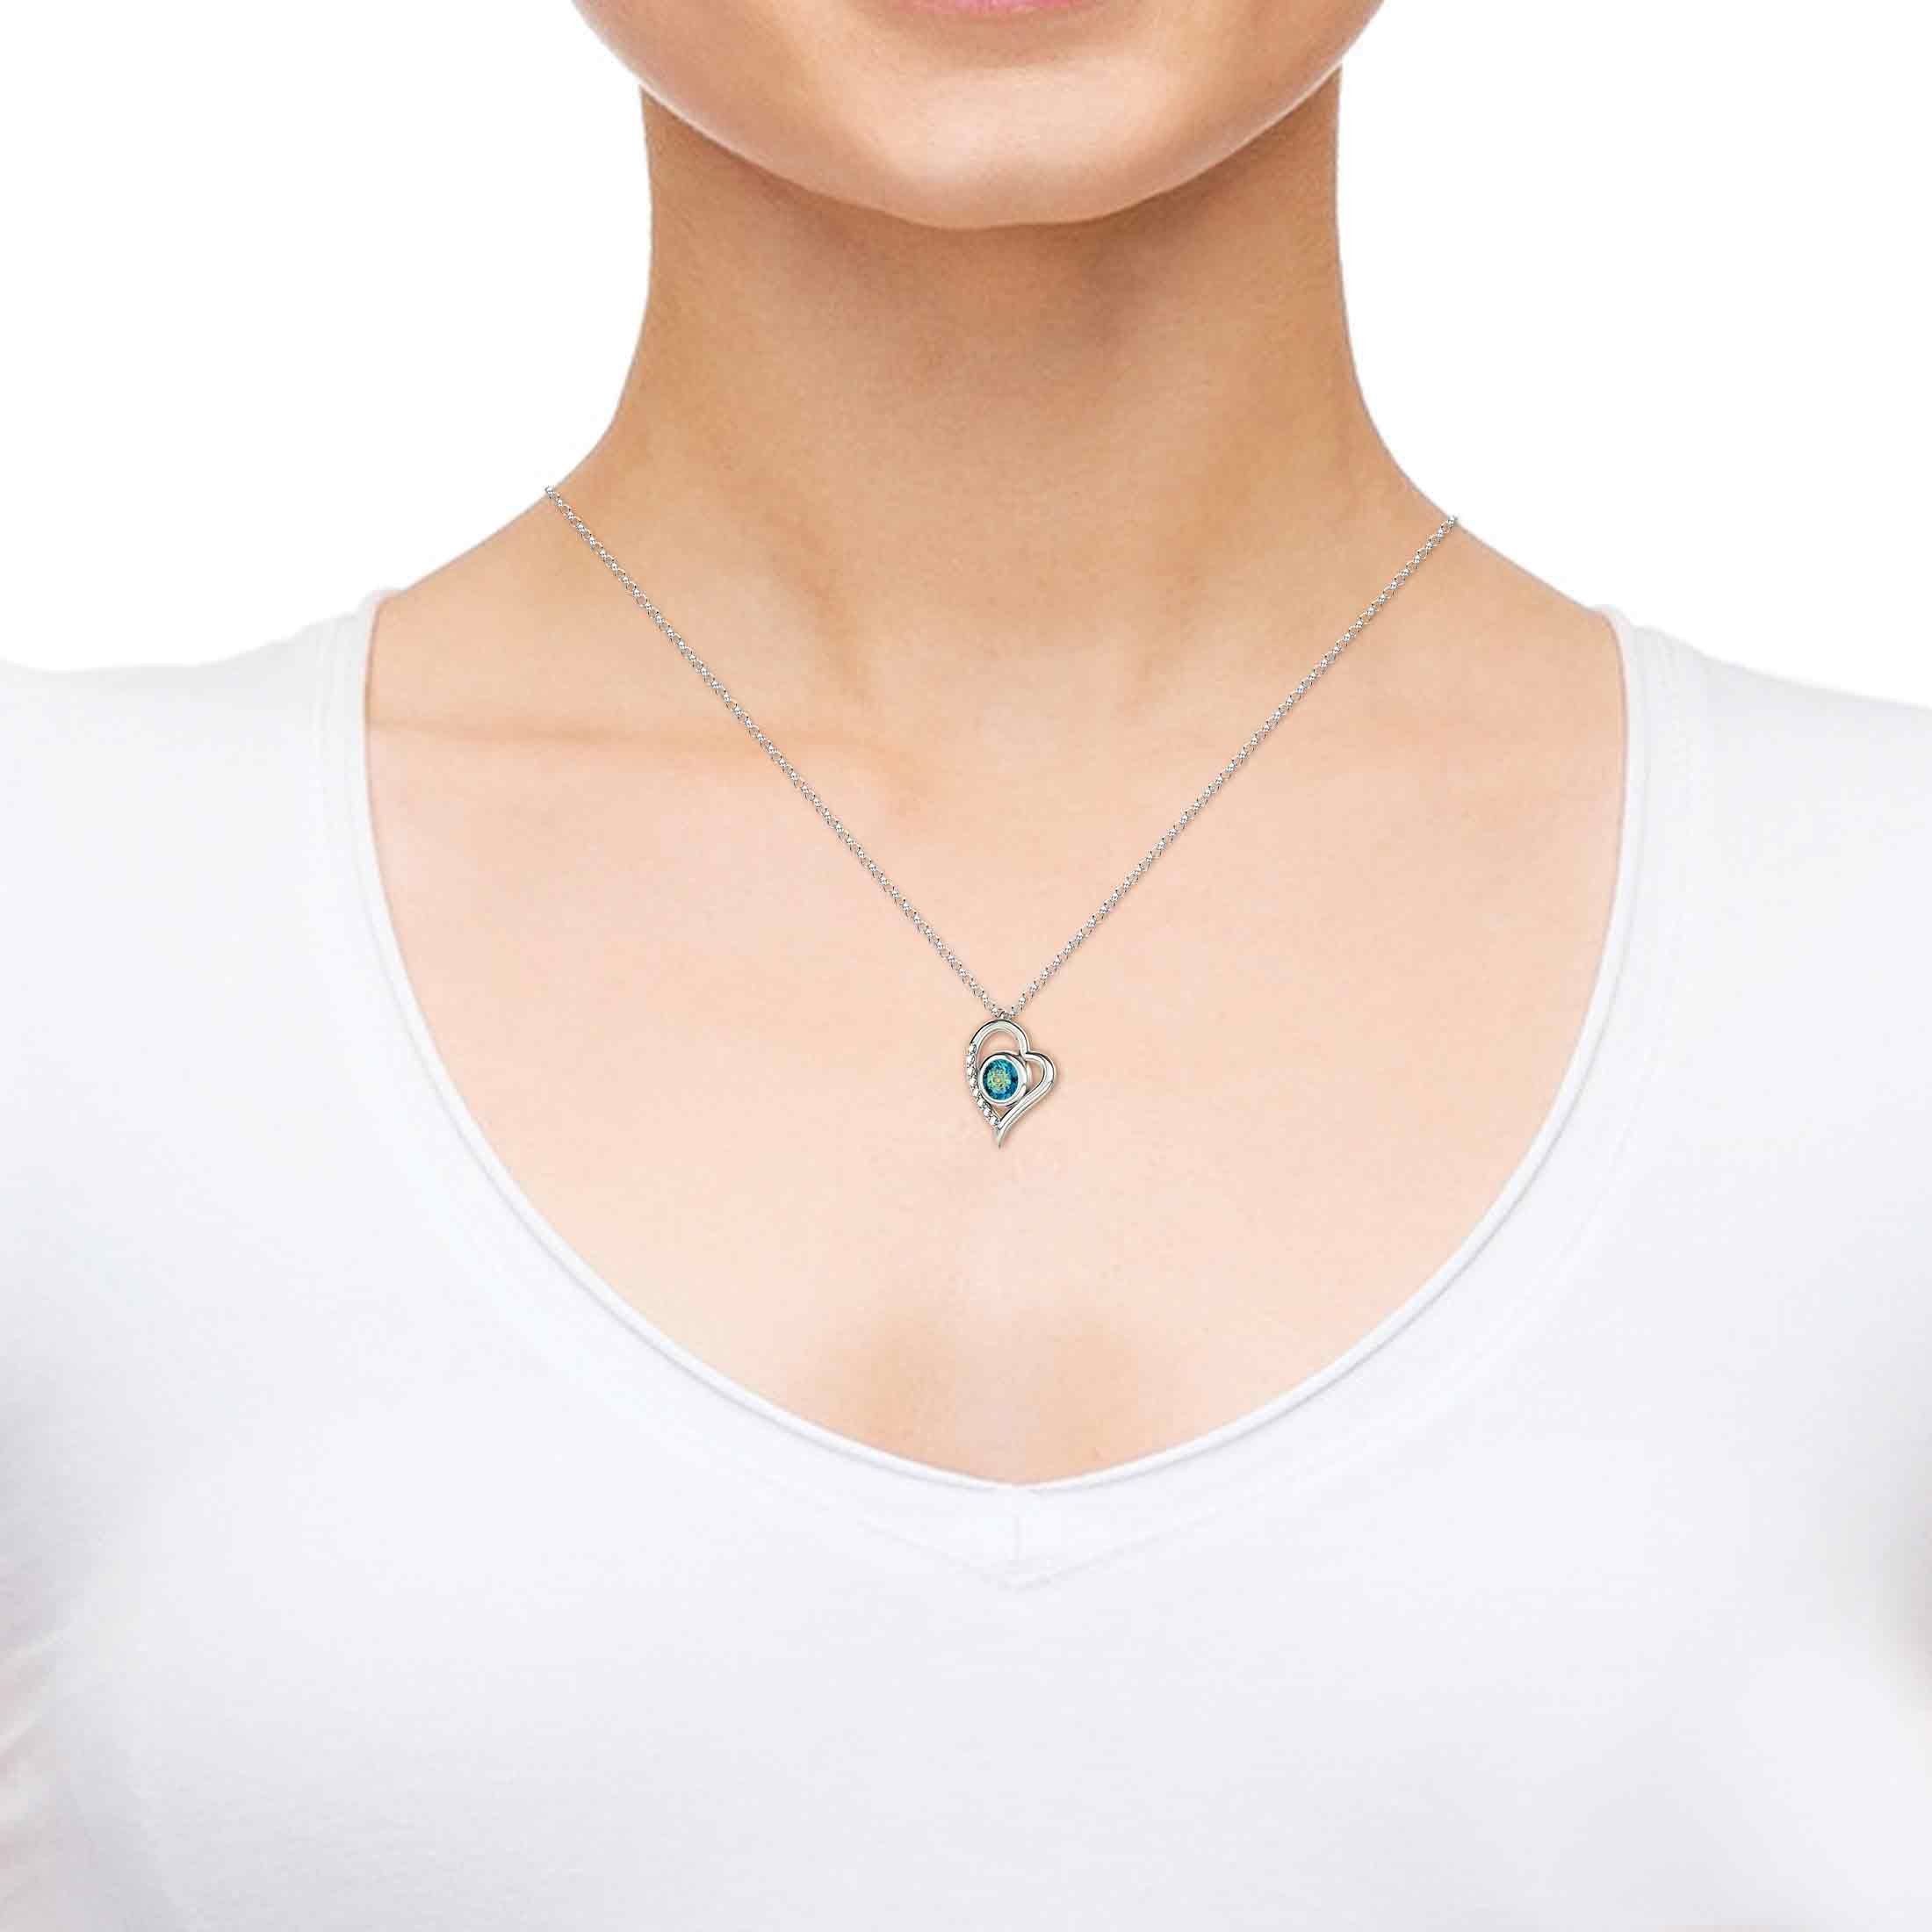 925 Sterling Silver Heart Pendant Necklace I Love You 12 Languages 24k Gold Inscribed Blue Crystal, 18'' by Nano Jewelry (Image #4)